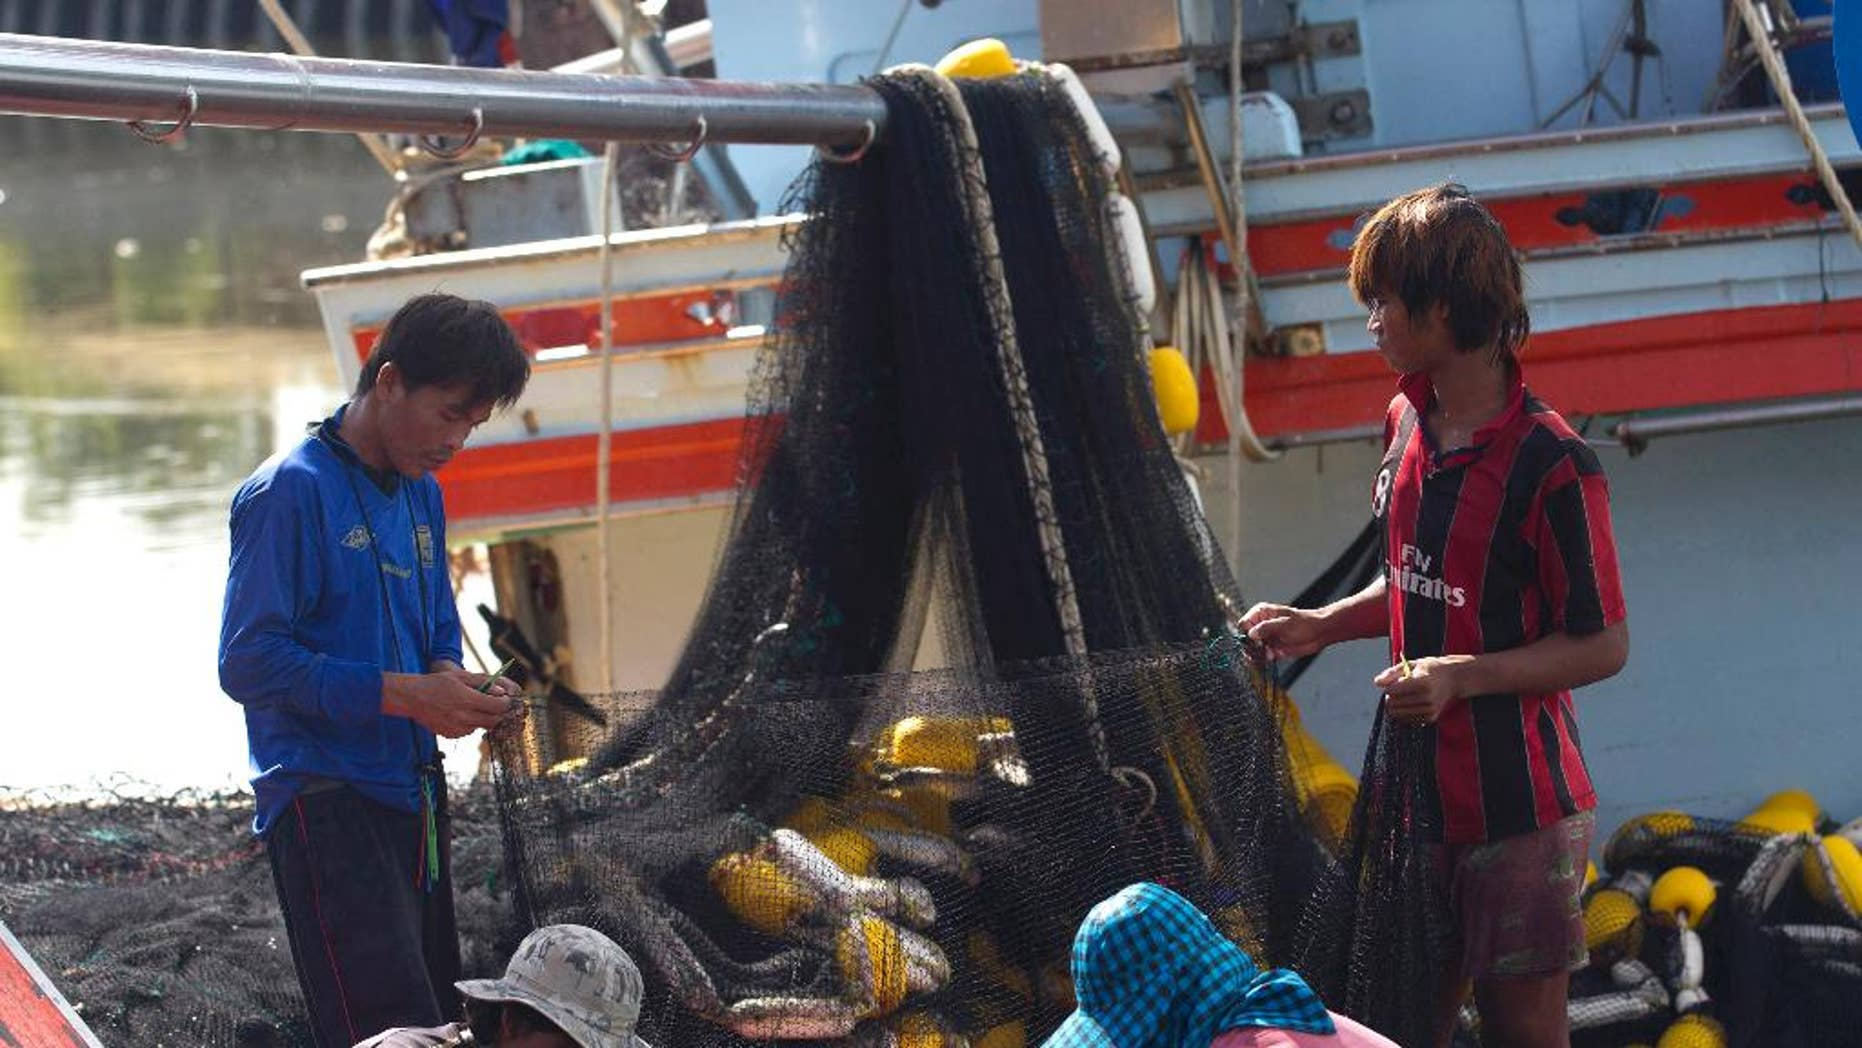 """FILE - In this Sept. 3, 2013 file photo, migrant workers from Myanmar clean fishing nets aboard a trawler after a fishing trip in the Gulf of Thailand in Samut Sakhon Province, west of Bangkok, Thailand. The European Union says Thailand must take """"swift and determined action"""" by next month to improve its fisheries and labor practices or the threat of a seafood ban will come closer.(AP Photo/Sakchai Lalit, File)"""